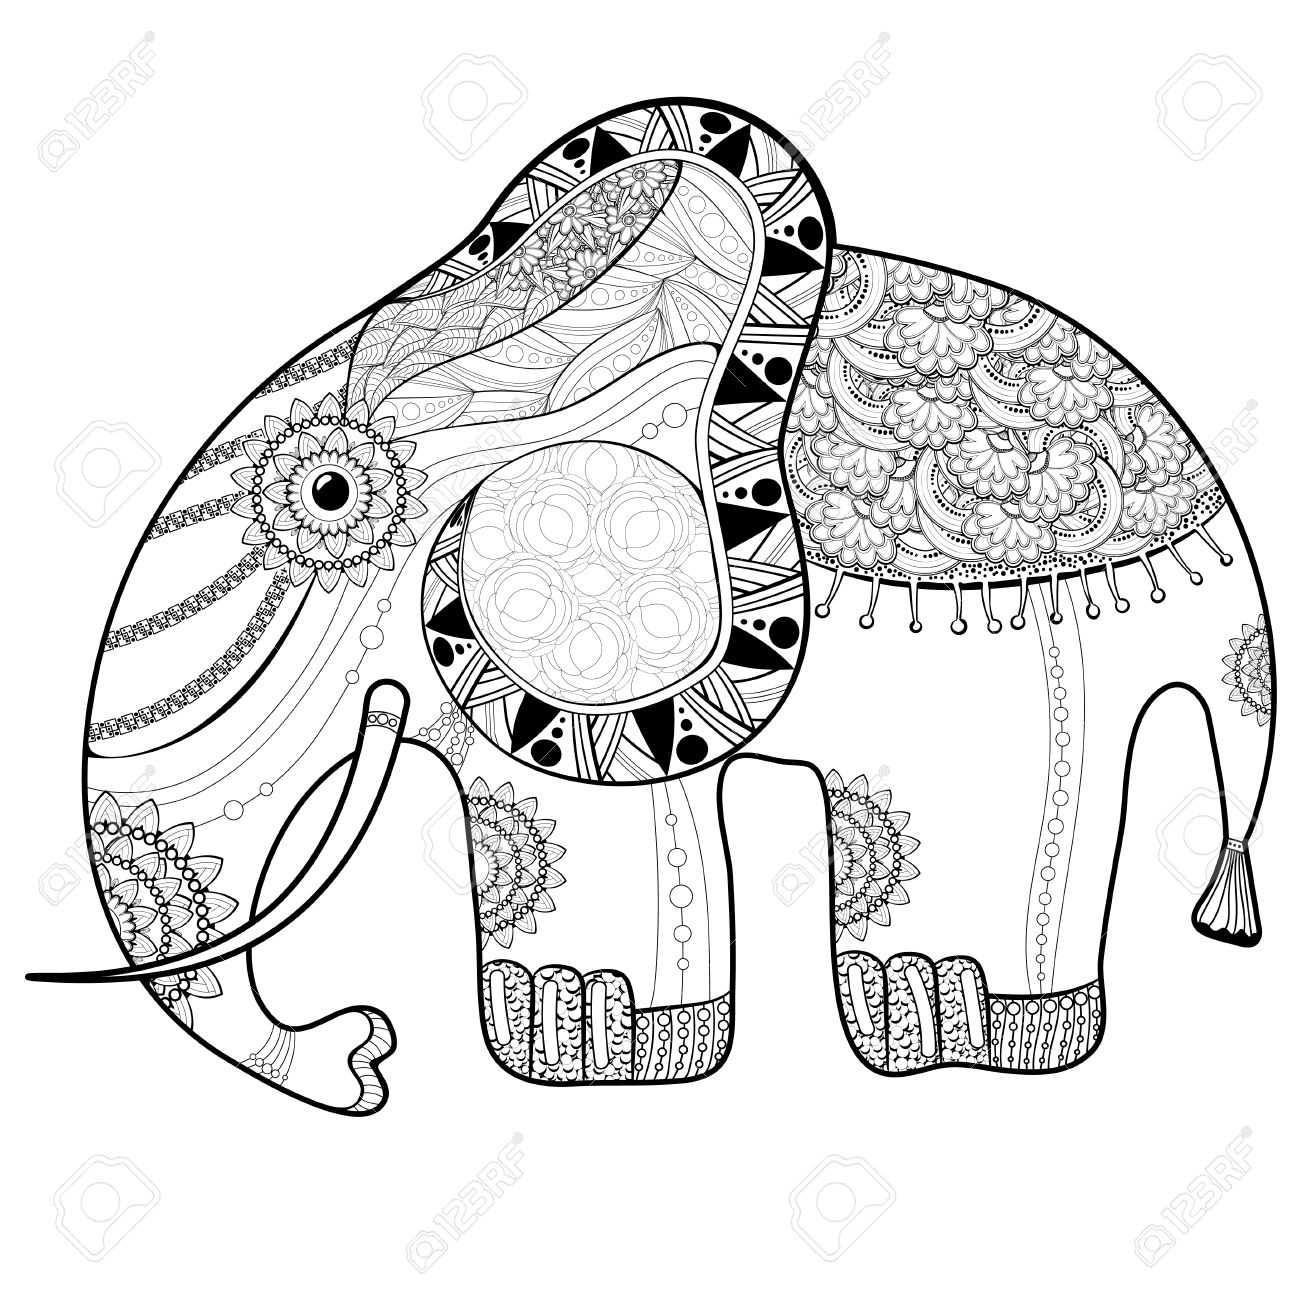 Coloring Book Page For Adults Elephant Ethnic Anti Stress Pattern Of Totem Animal Style